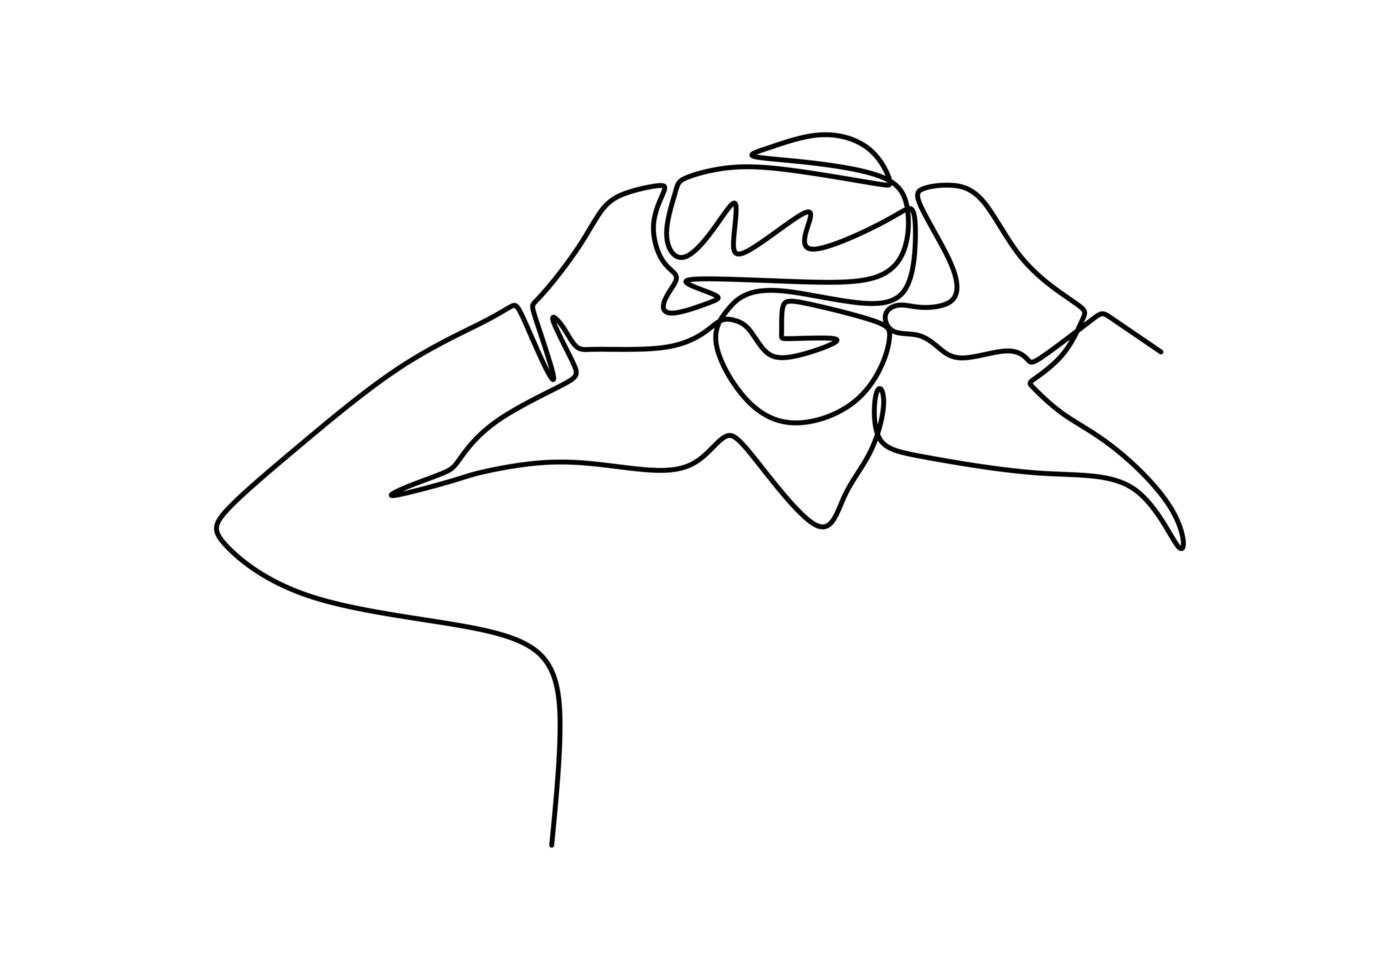 One line continuous drawing Man in glasses device virtual reality, Vector illustration simplicity. Minimalism hand drawn electronic future technology.